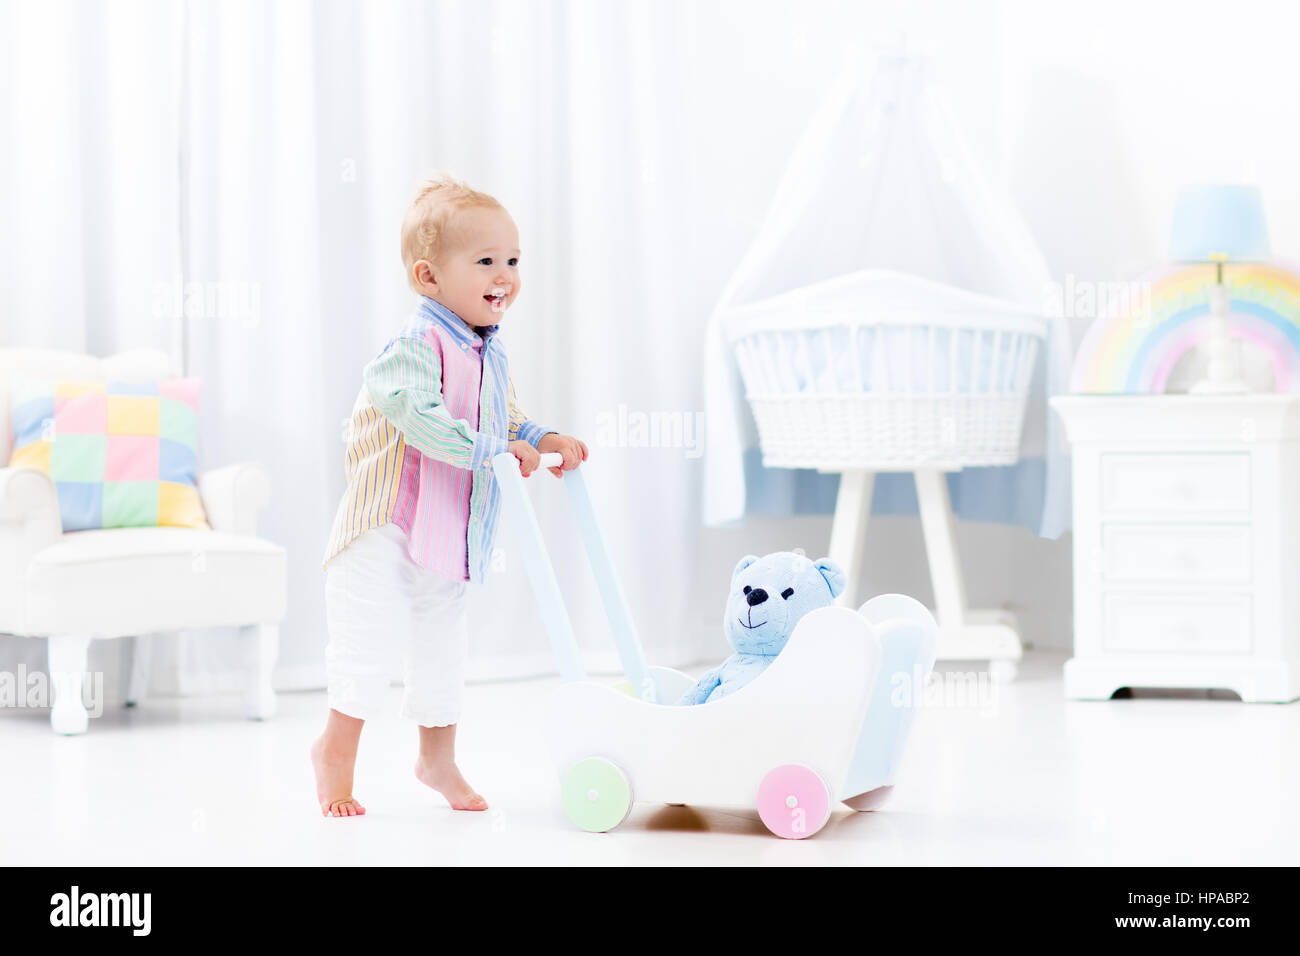 Baby boy learning to walk with wooden push walker in white bedroom with  pastel rainbow color